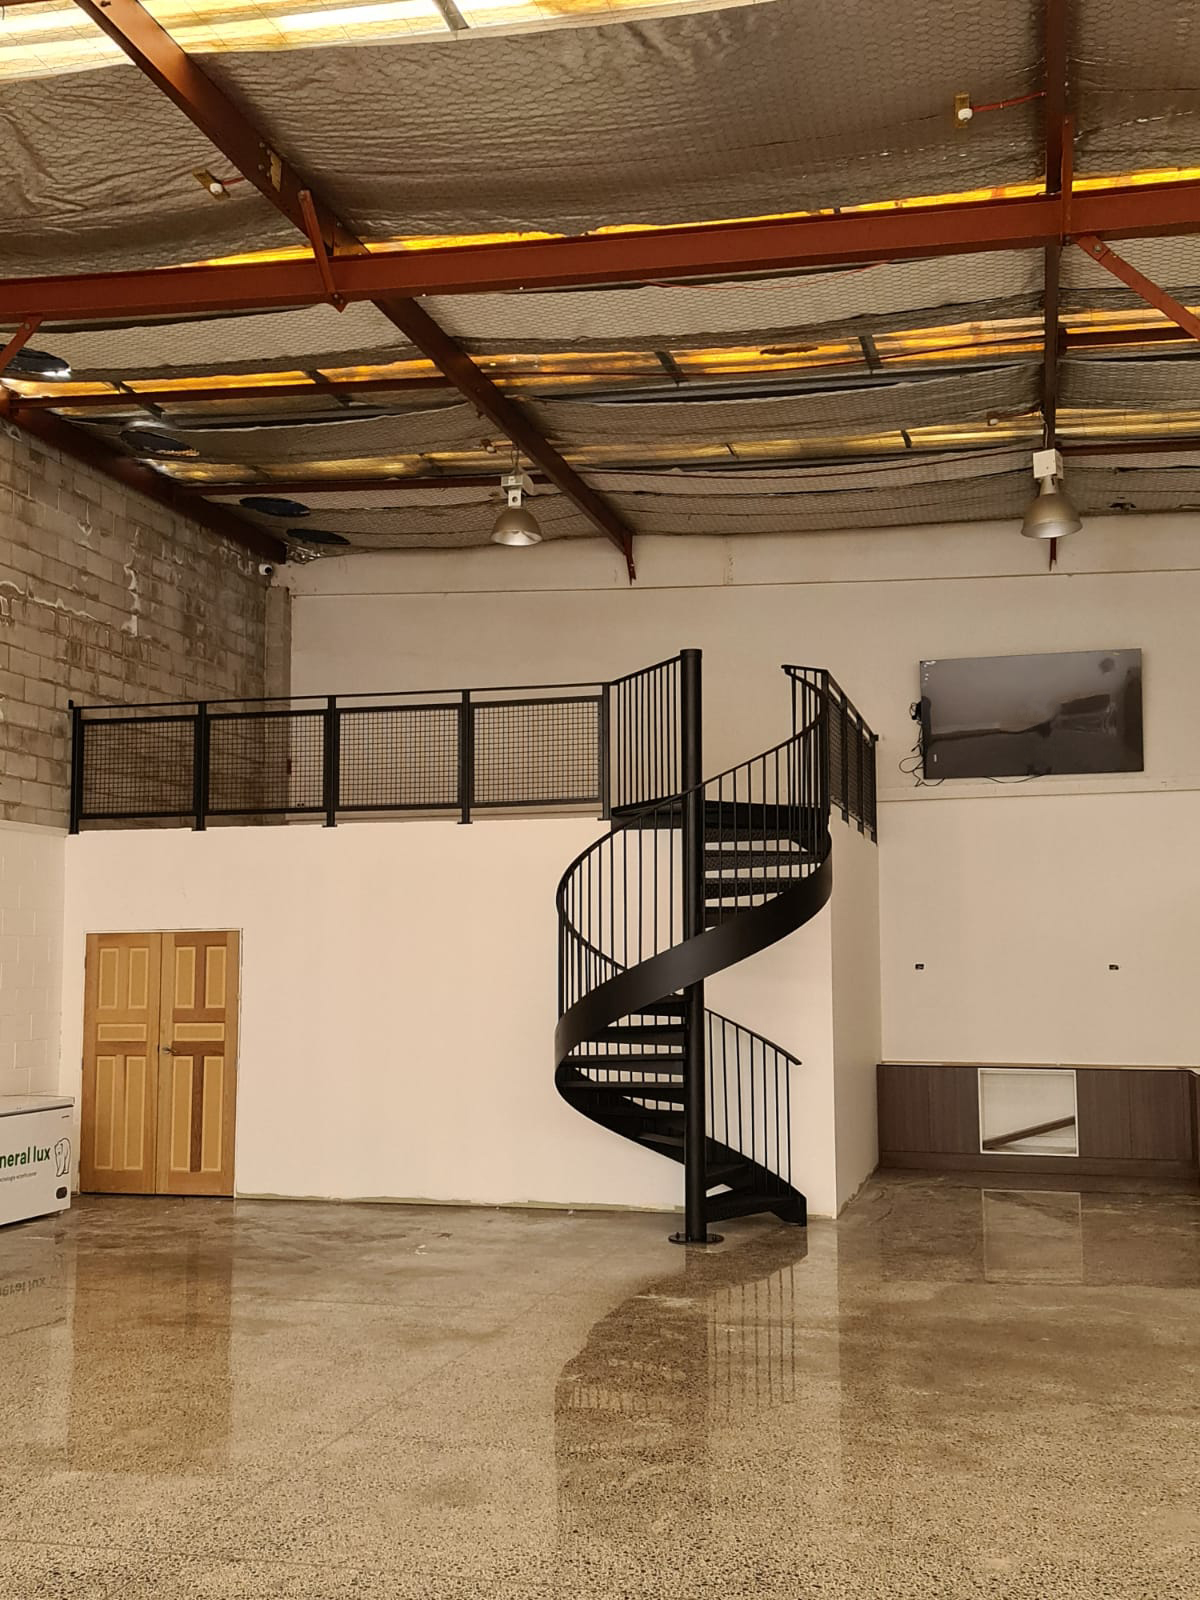 Metal handrail for stairs